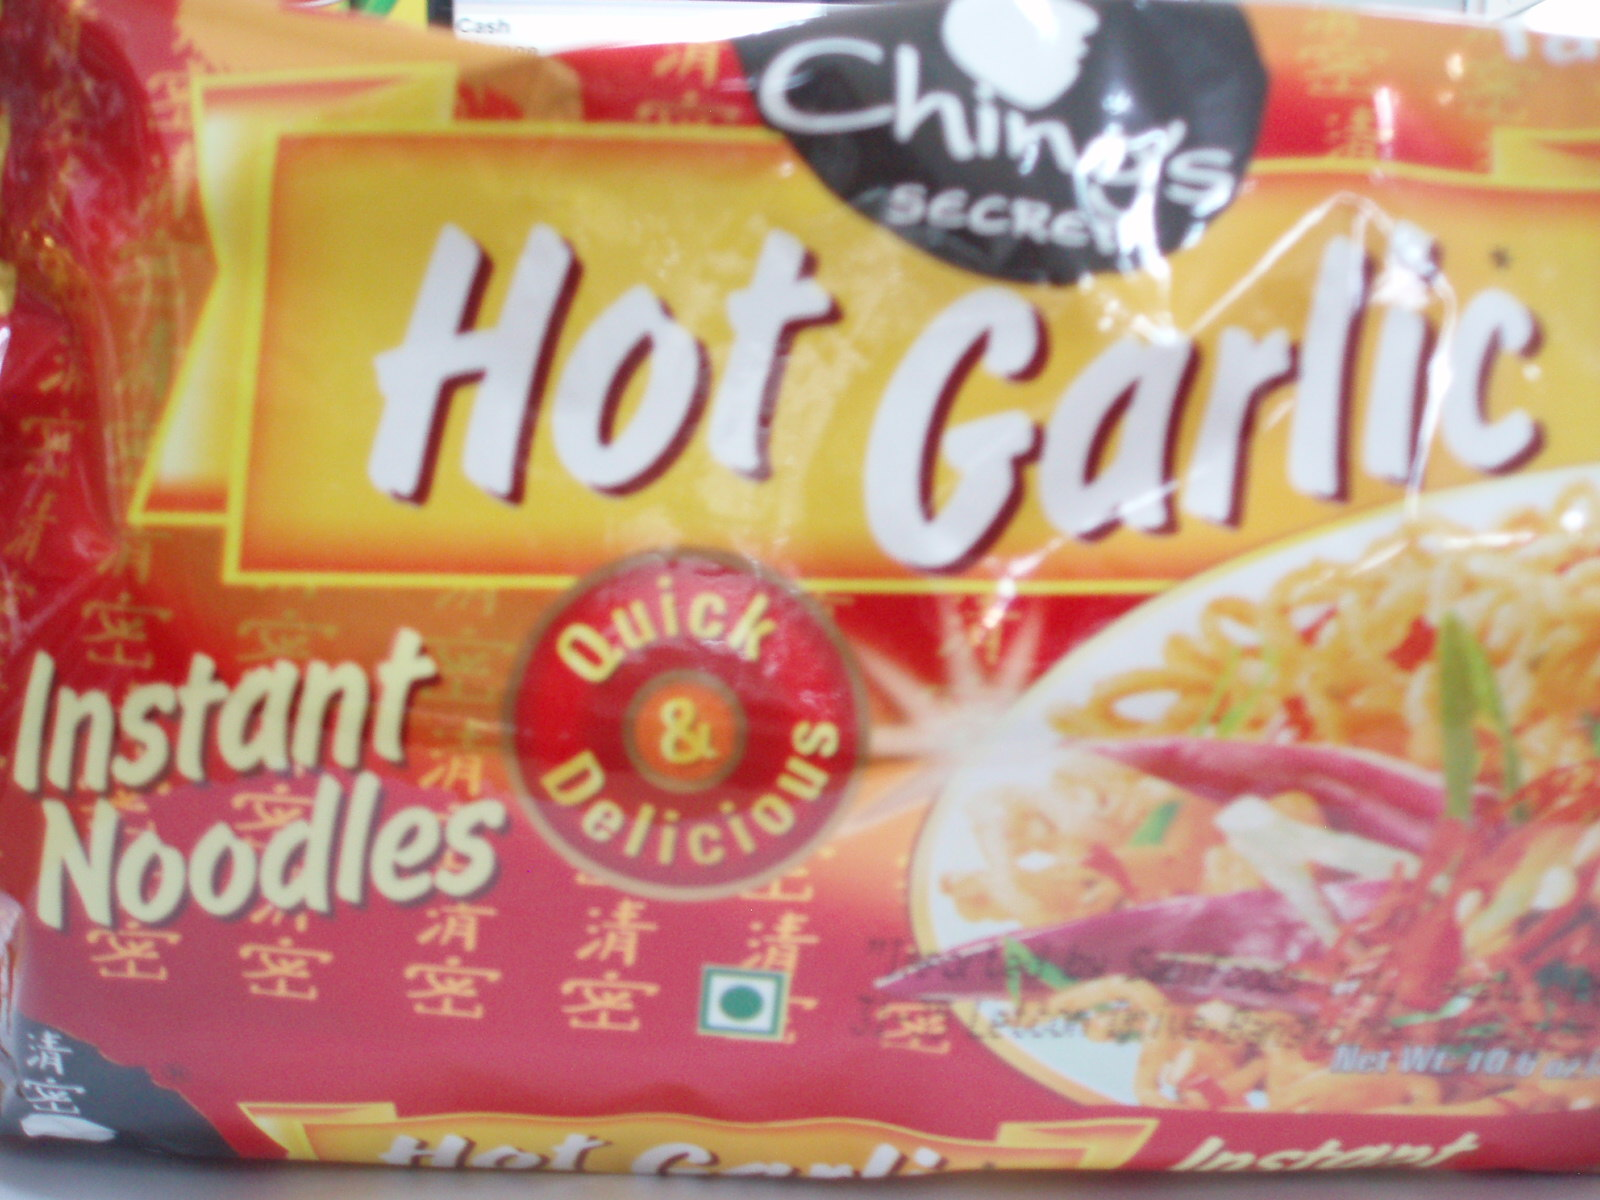 Hot Garlic Noodles-Ching'S Secret-300 gm